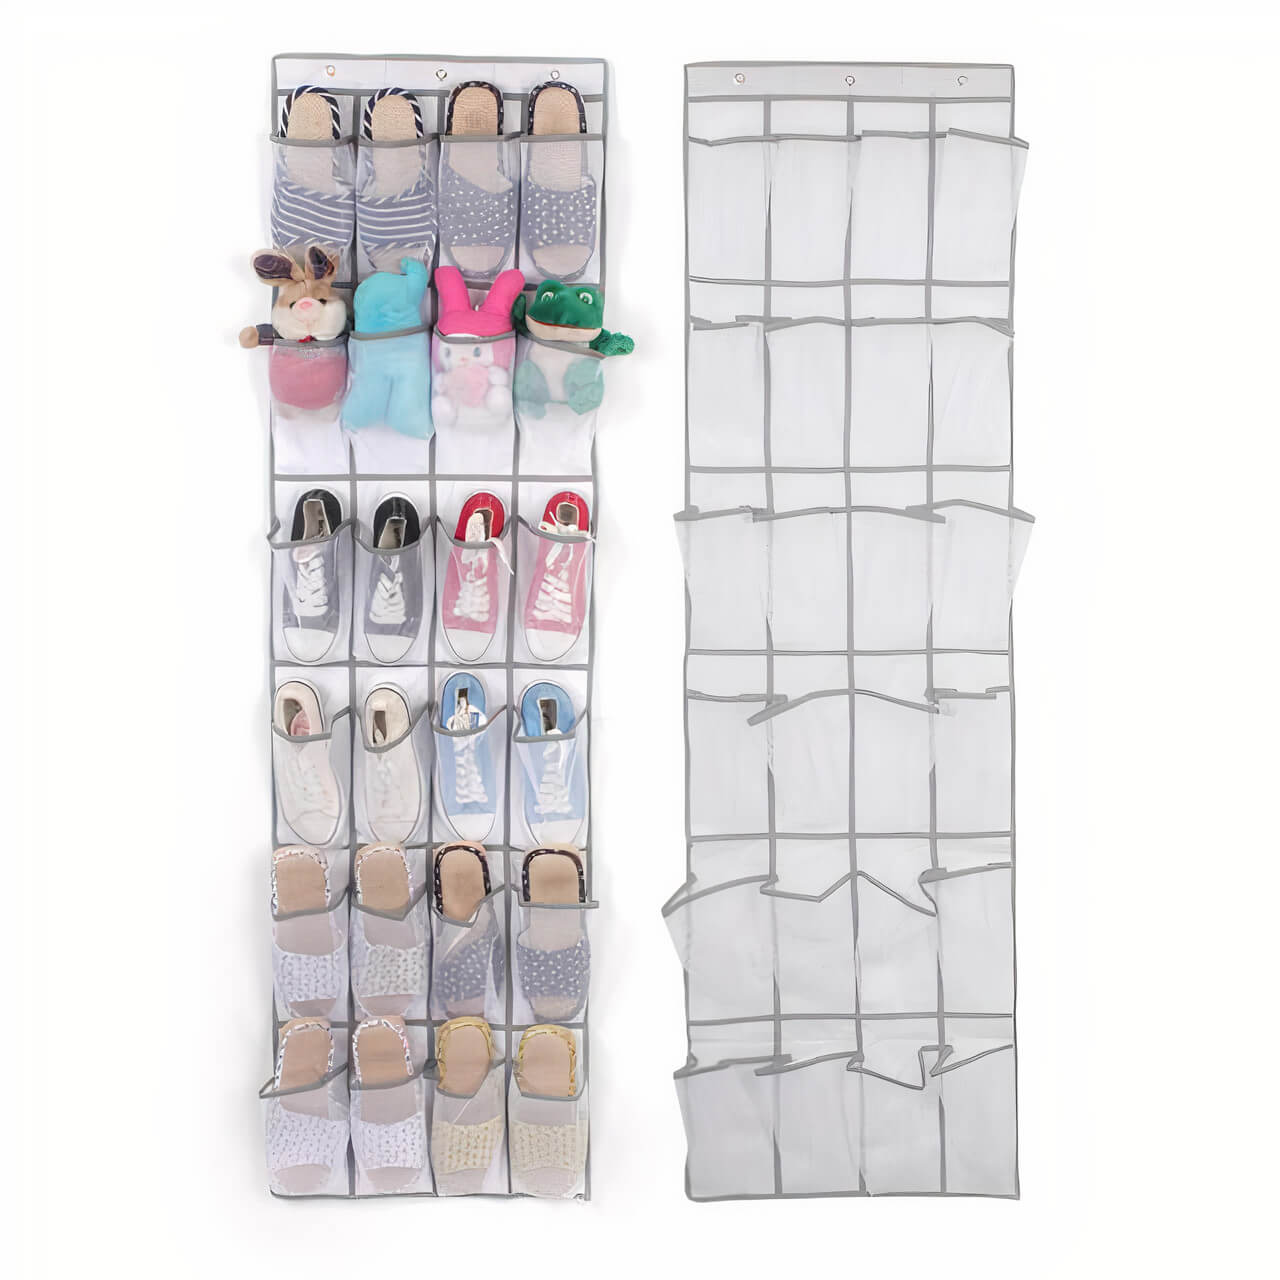 24 Pockets Over The Door Organizer